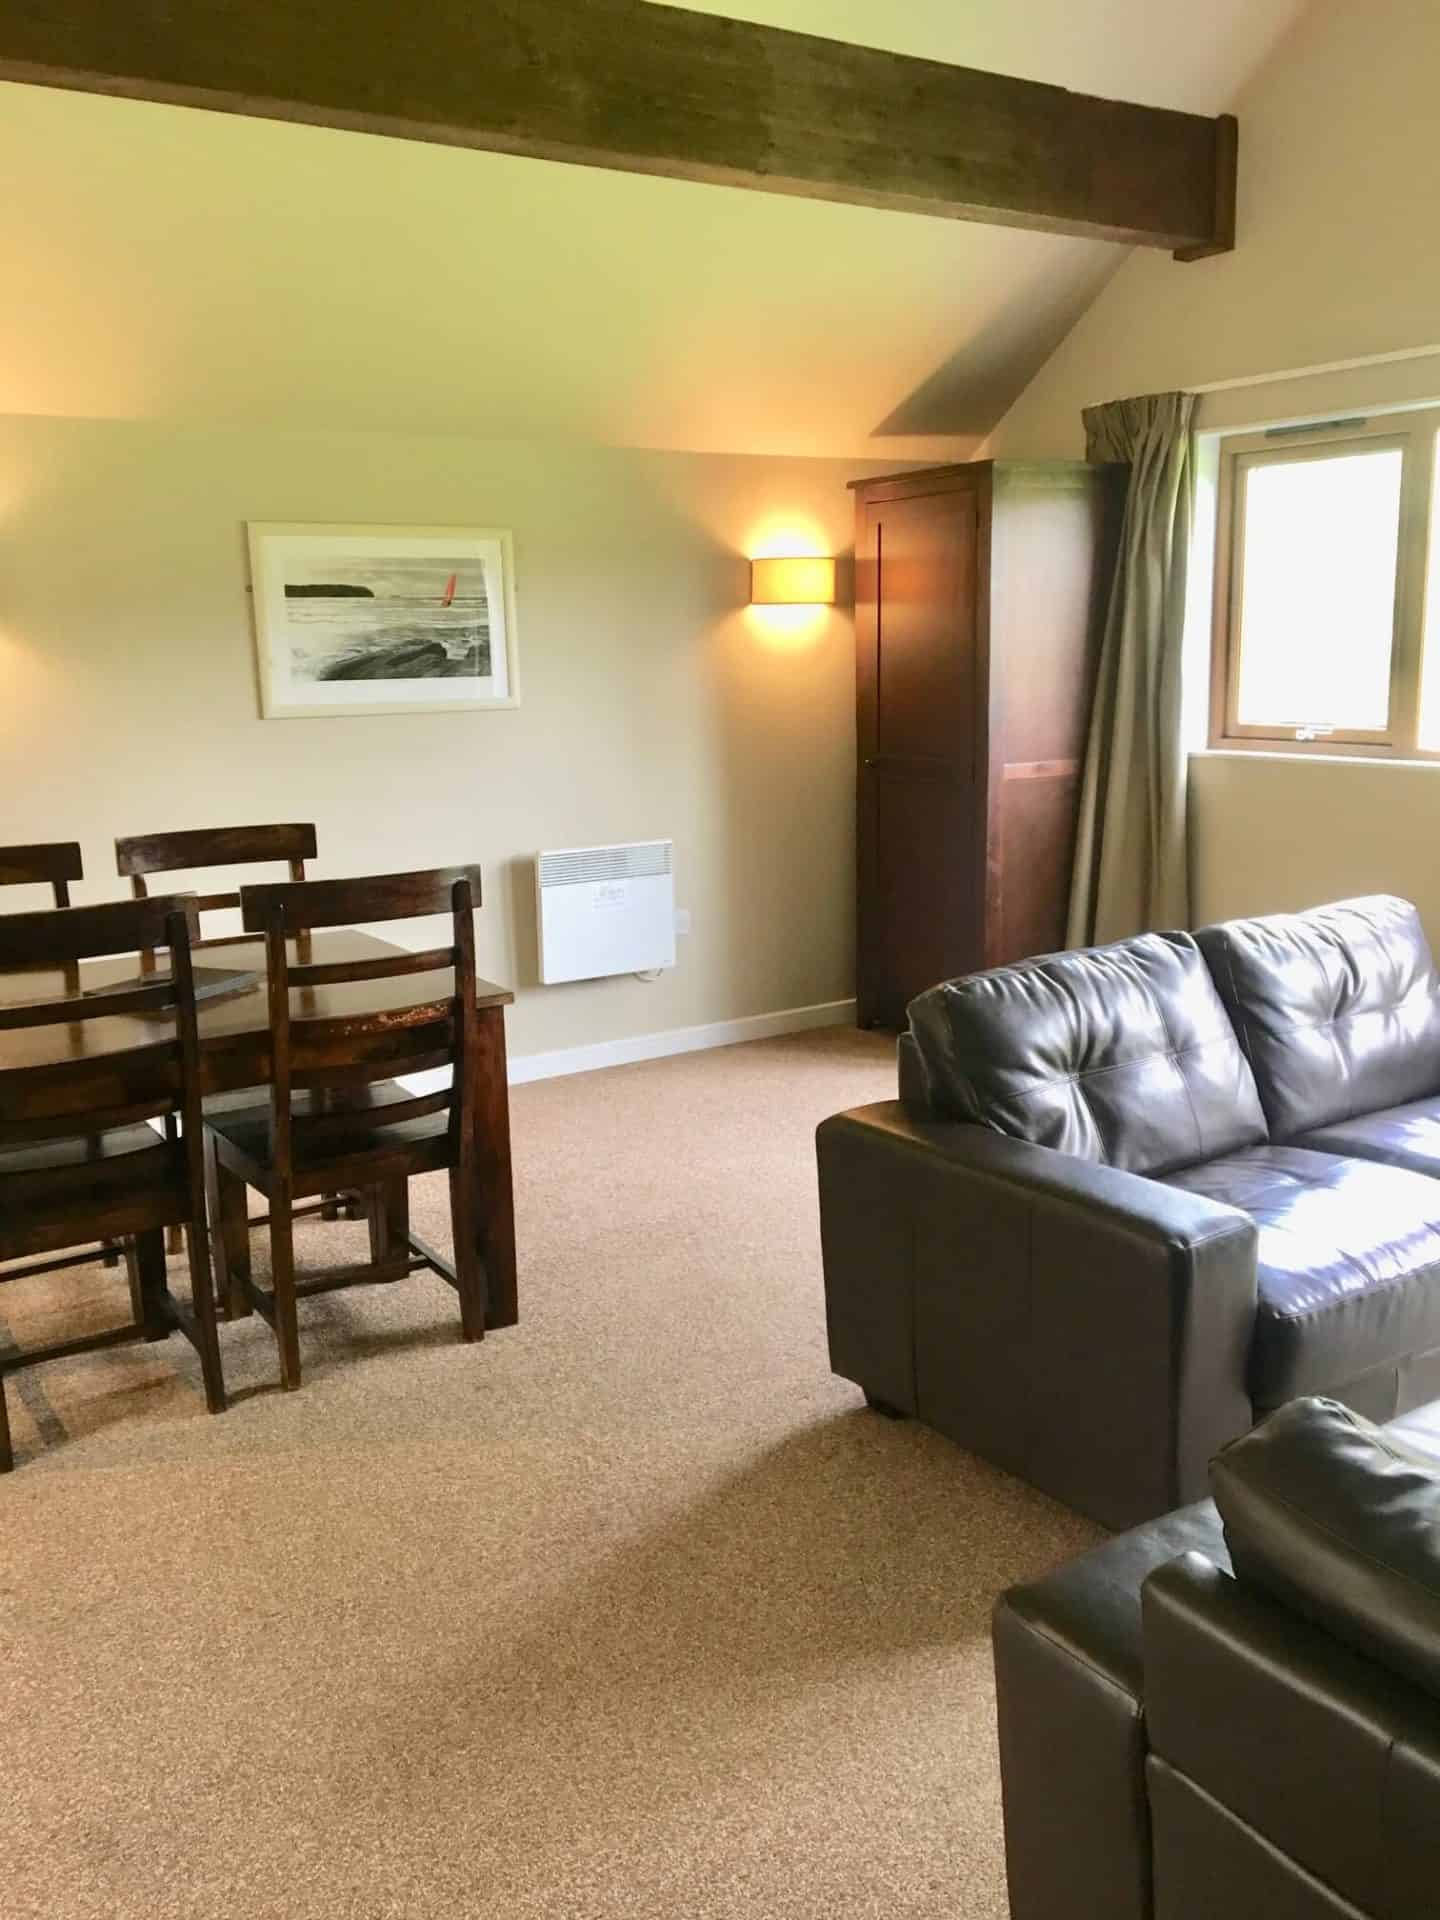 Our Family Holiday at Bluestone Wales - inside a Ramsey lodge